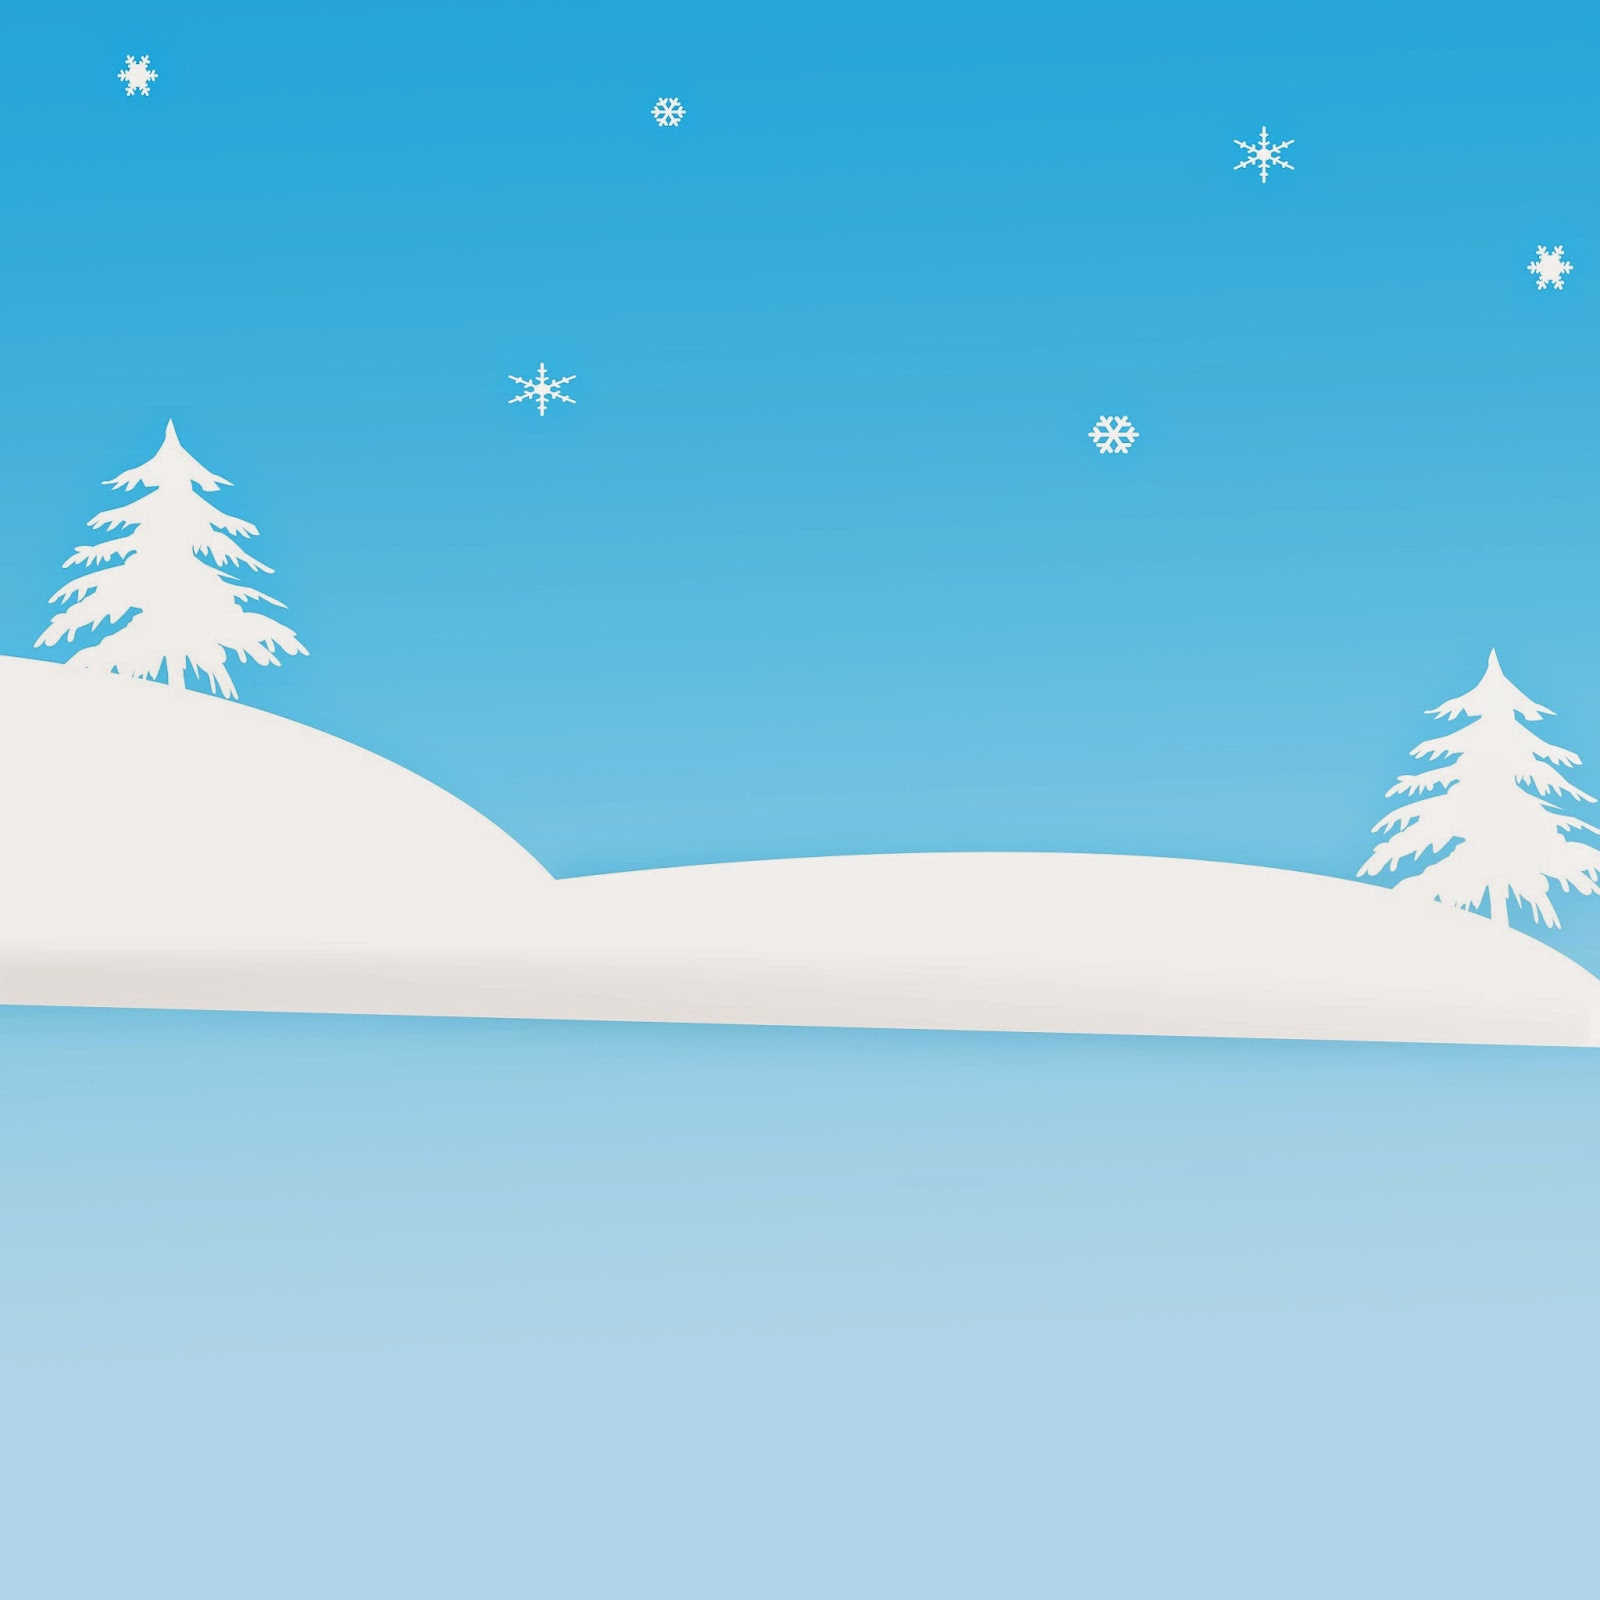 Frozen Backgrounds Clipart  Oh My Fiesta in english